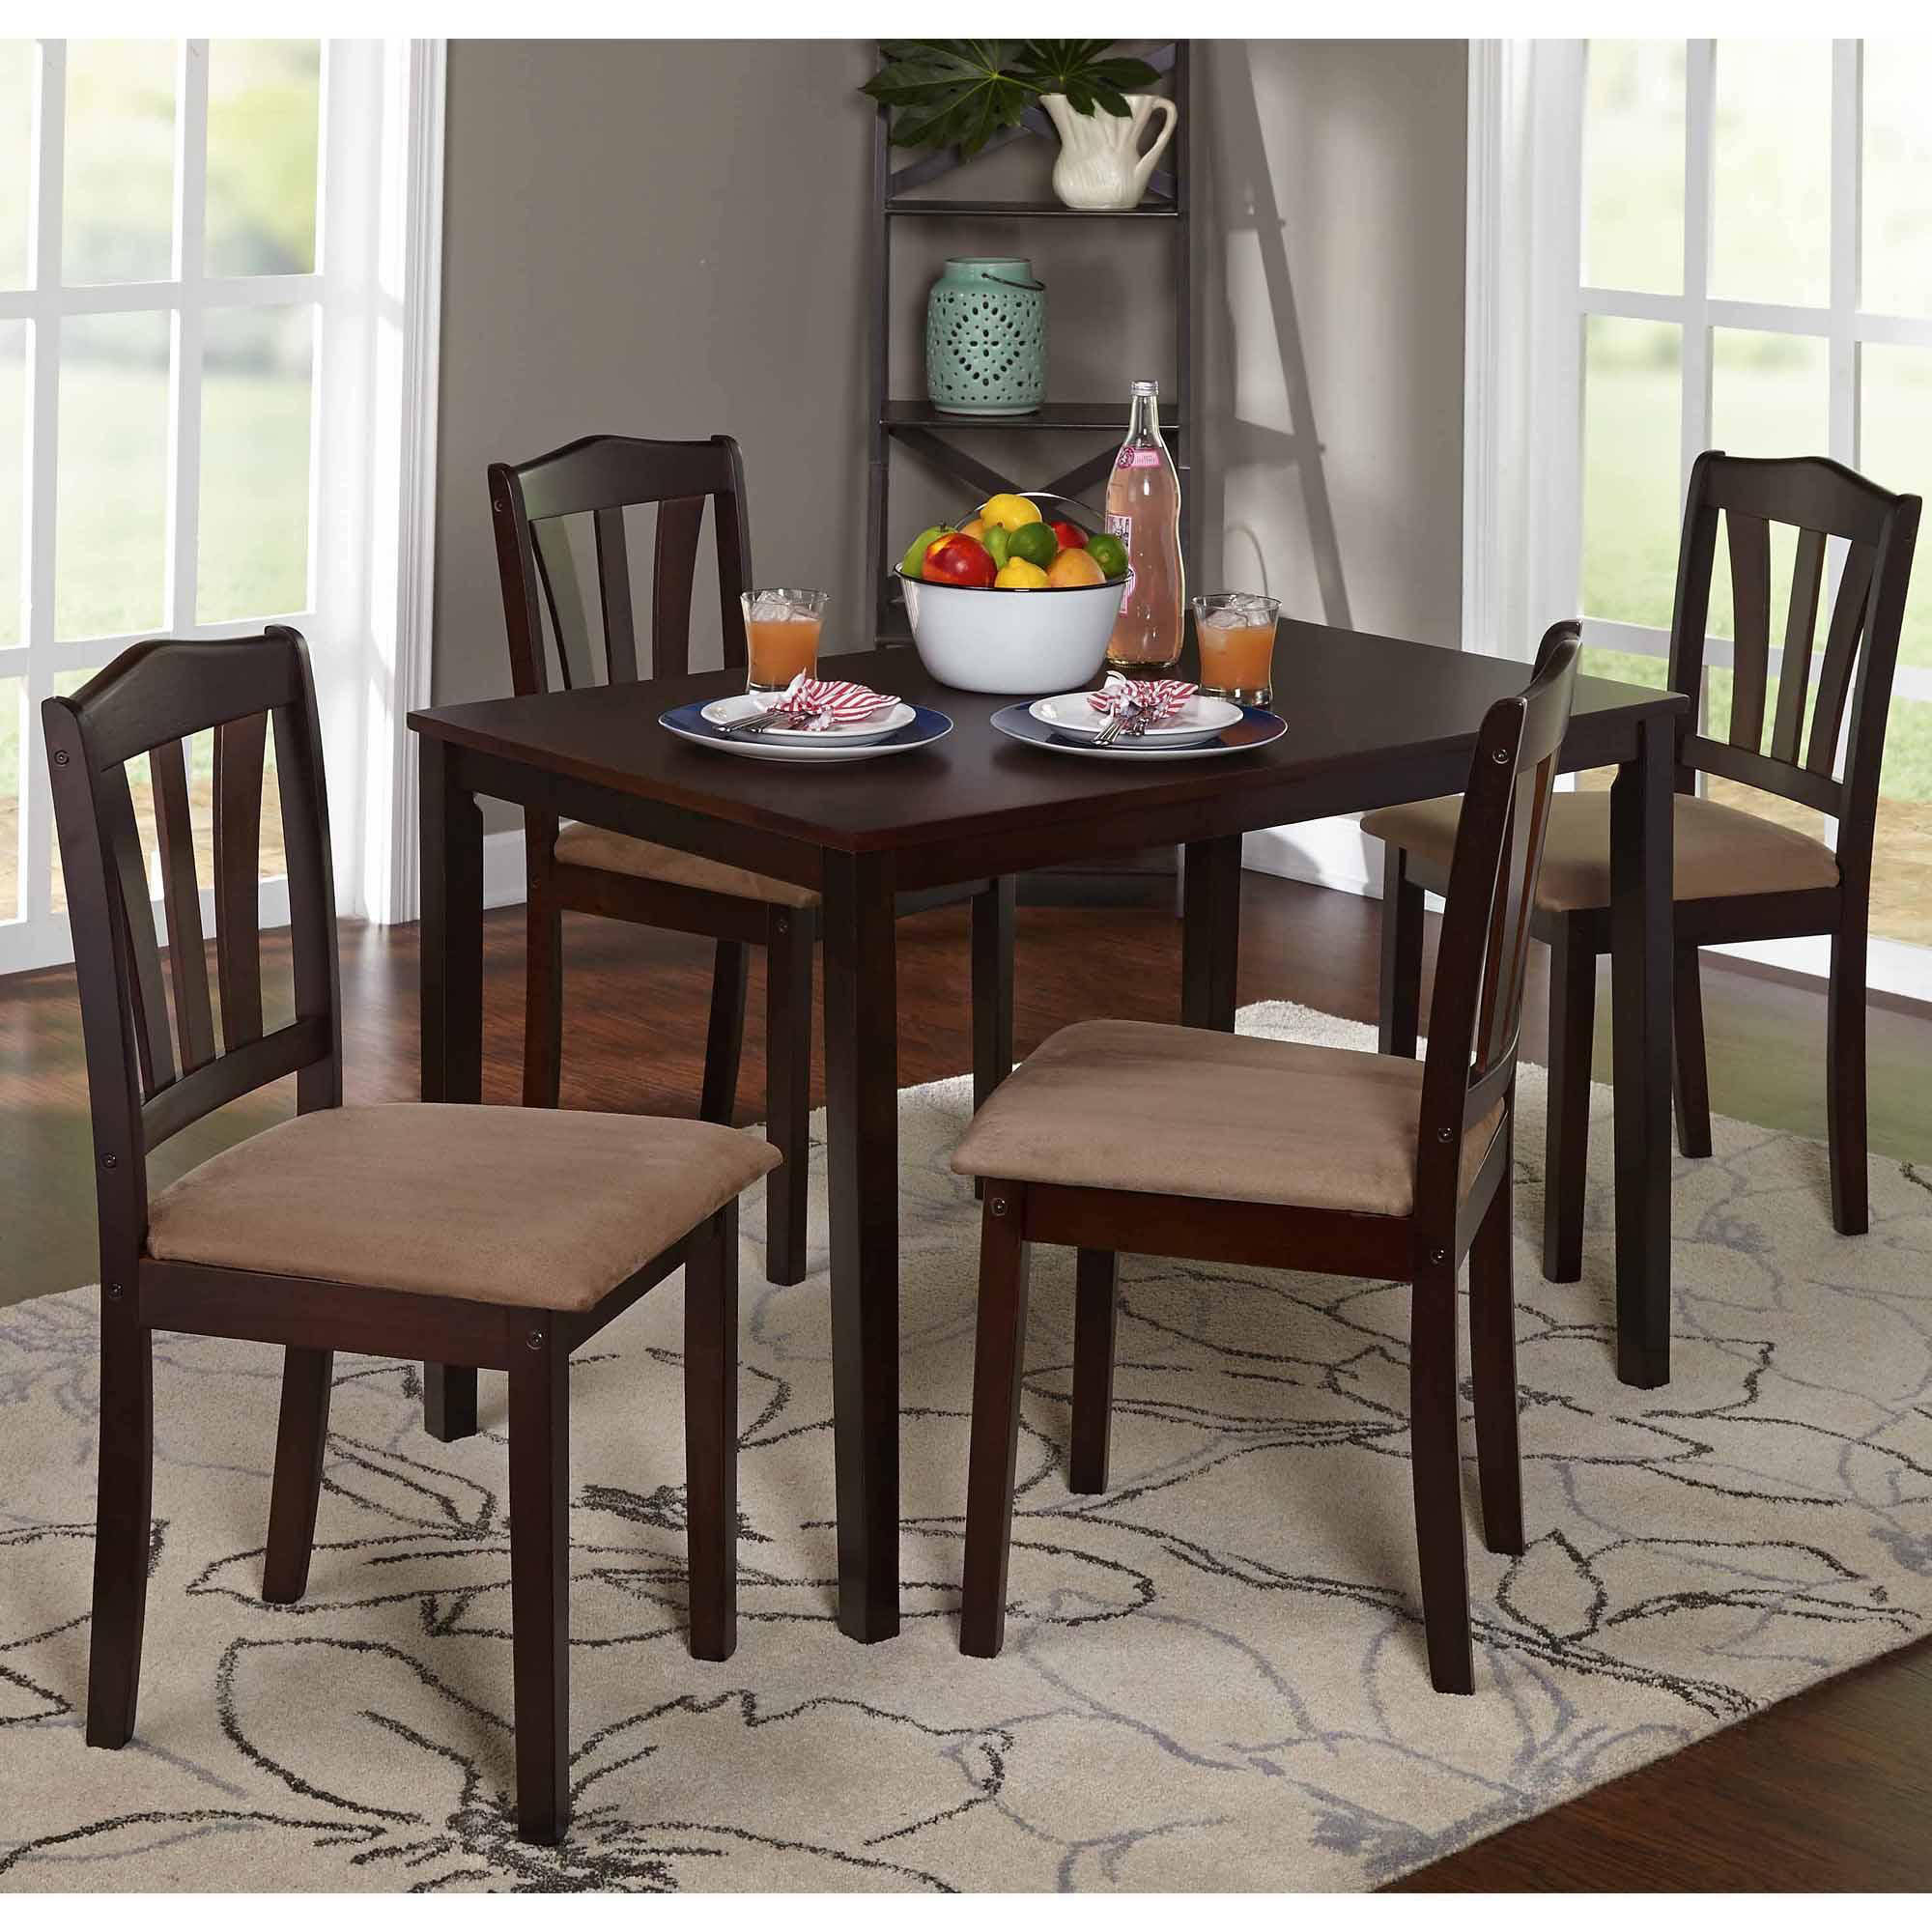 metropolitan 5-piece dining set, multiple colors - walmart